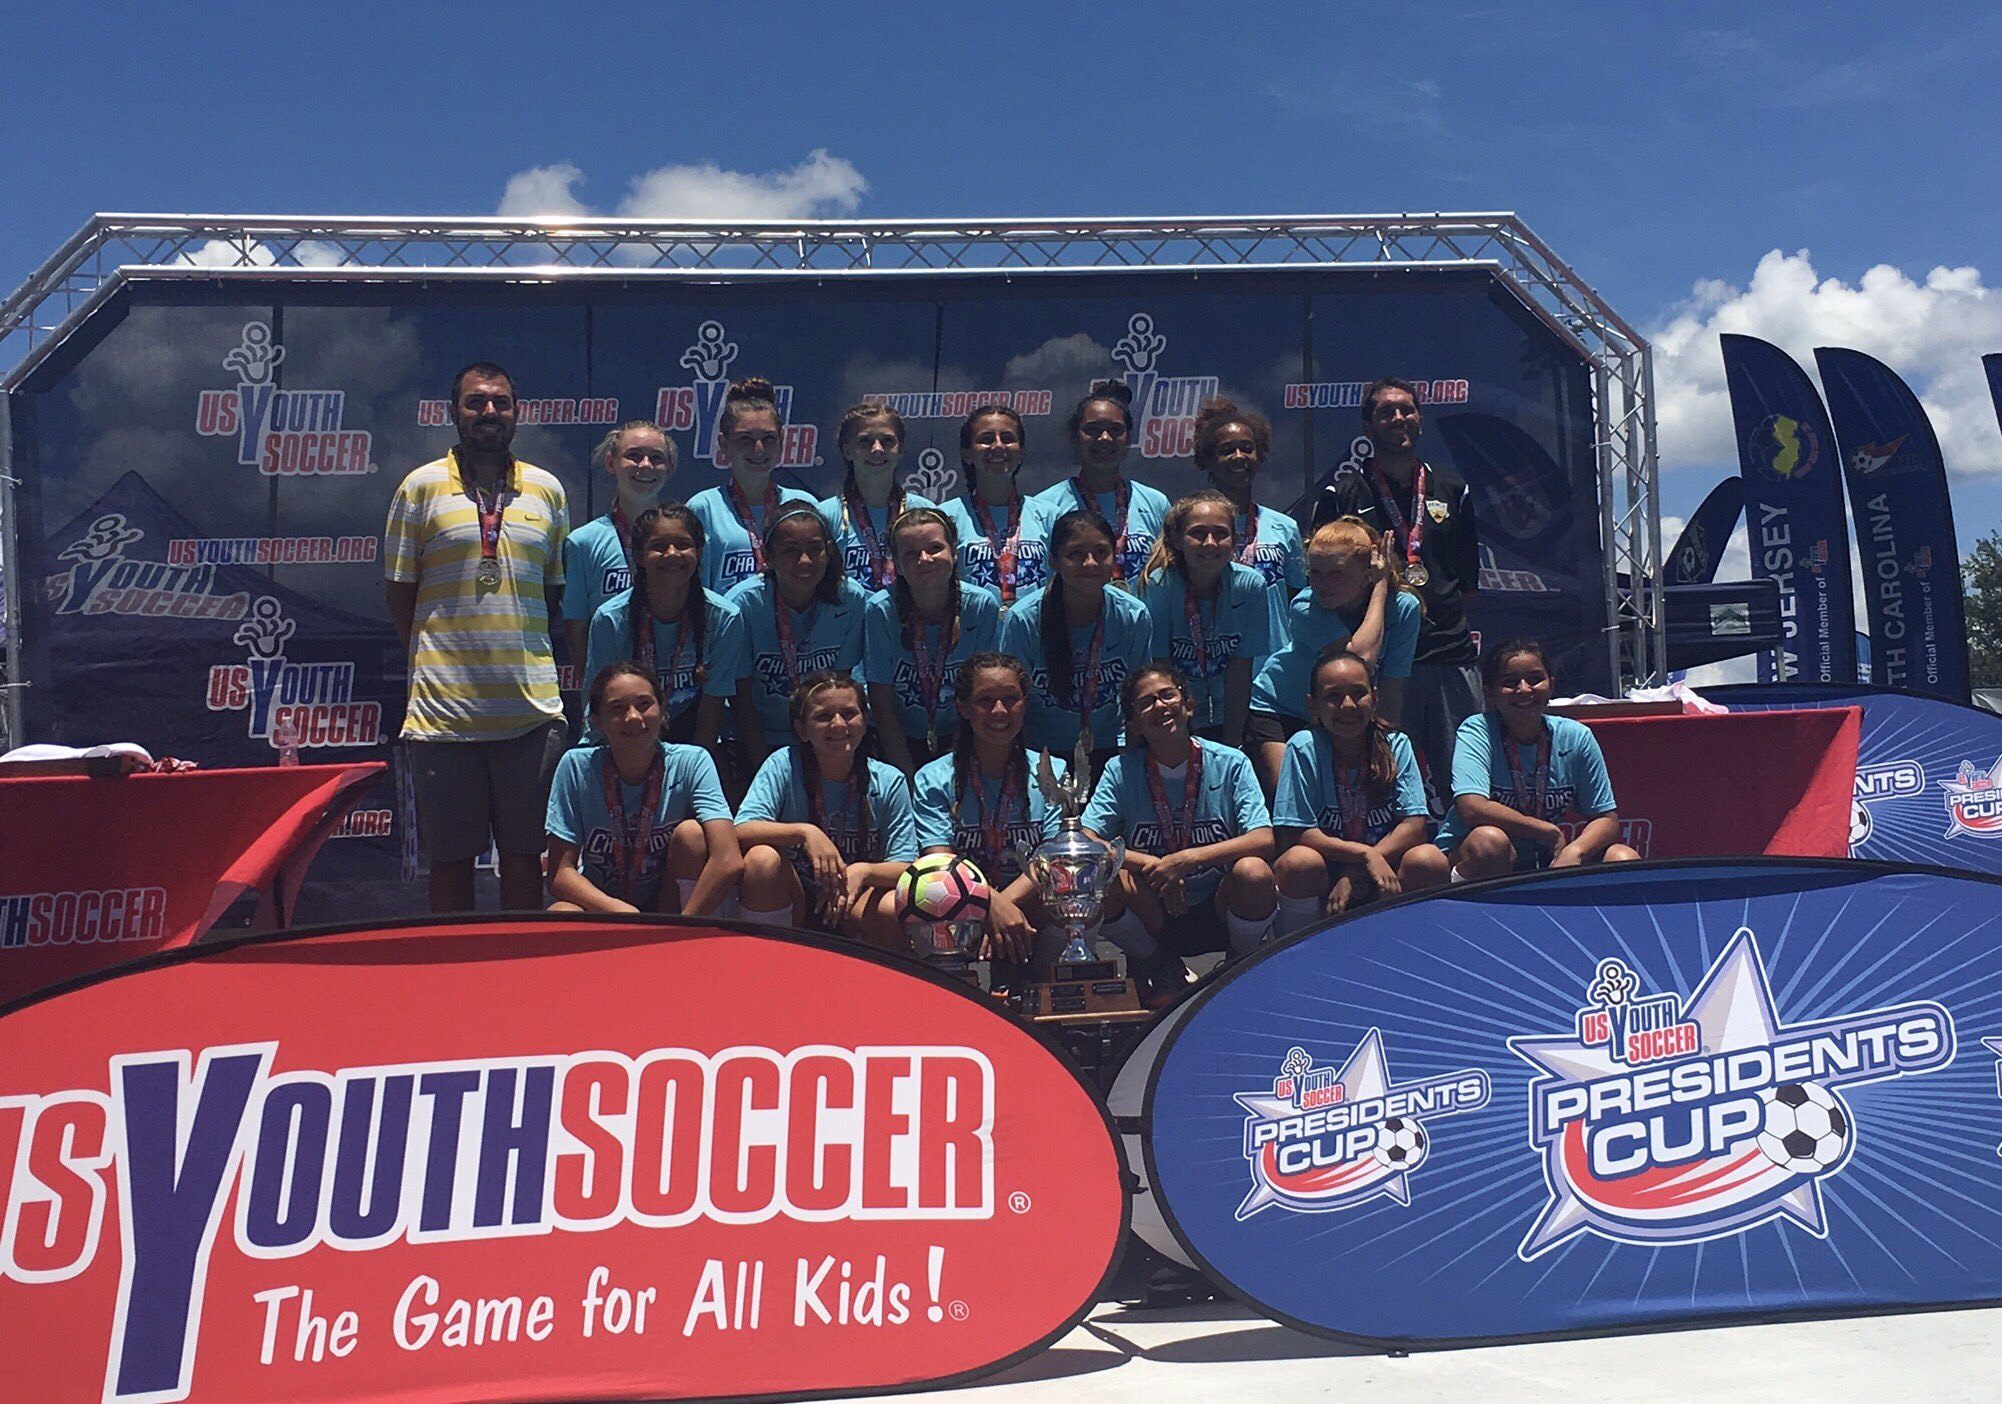 Beach FC club soccer Girls 2004 Nunes Presidents Cup National Champions